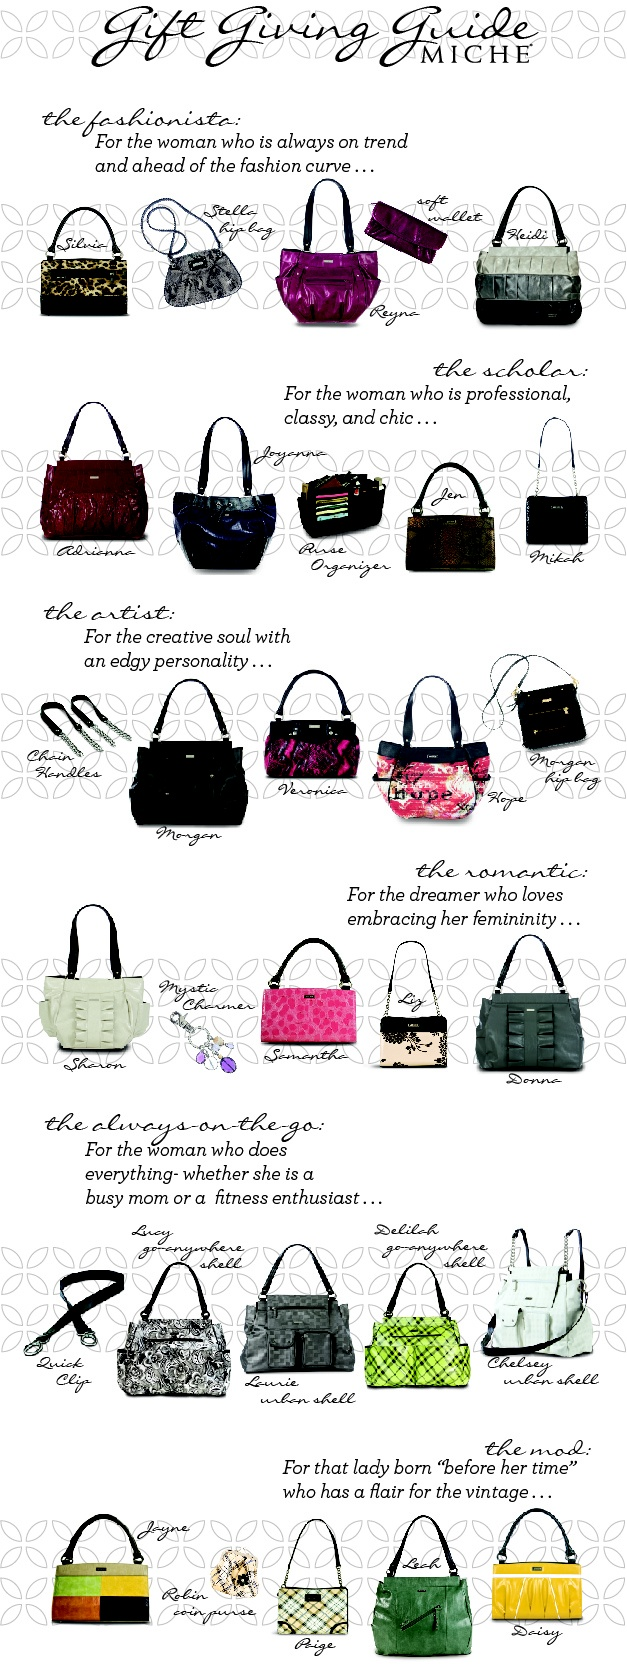 Miche Bag ...You can get this at www.needmore.miche.com Miche...Buy it, Love it, Obsess!!! You deserve it! I love my Miche! You can too! Join my Miche Team today!